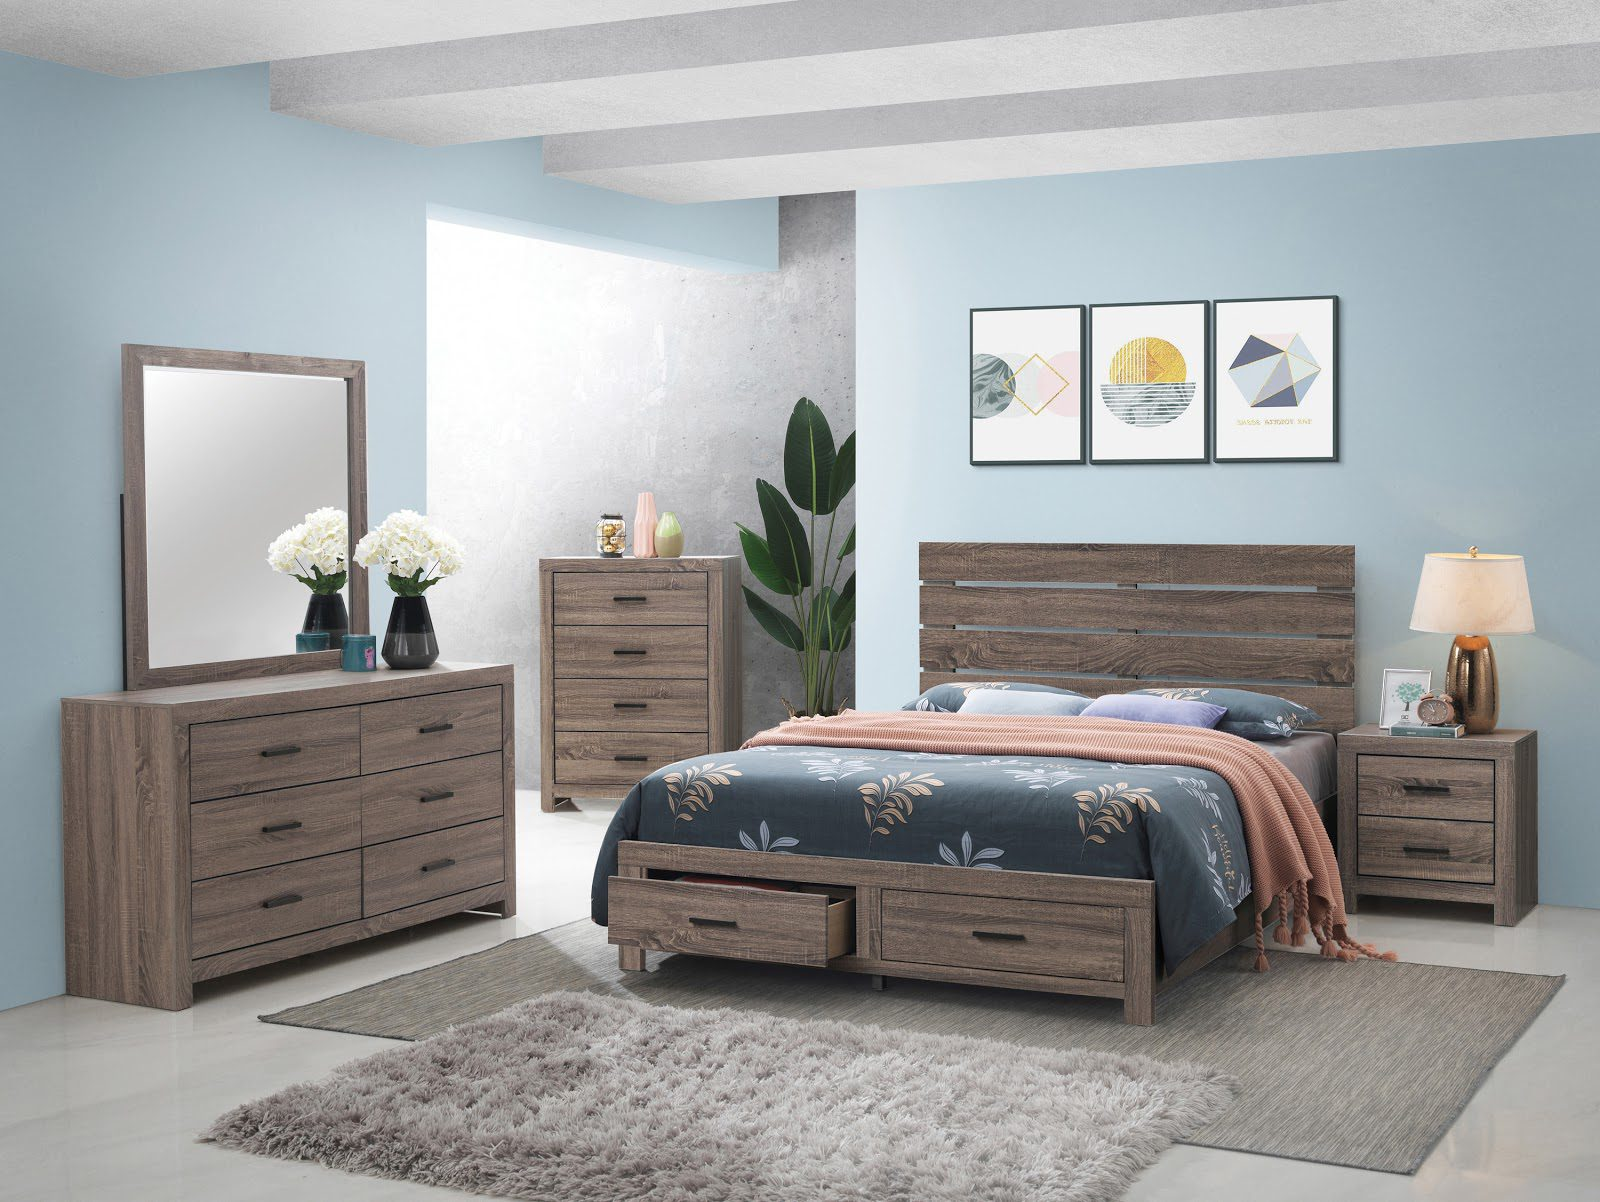 Kids bedroom furniture: A teen's bed with storage